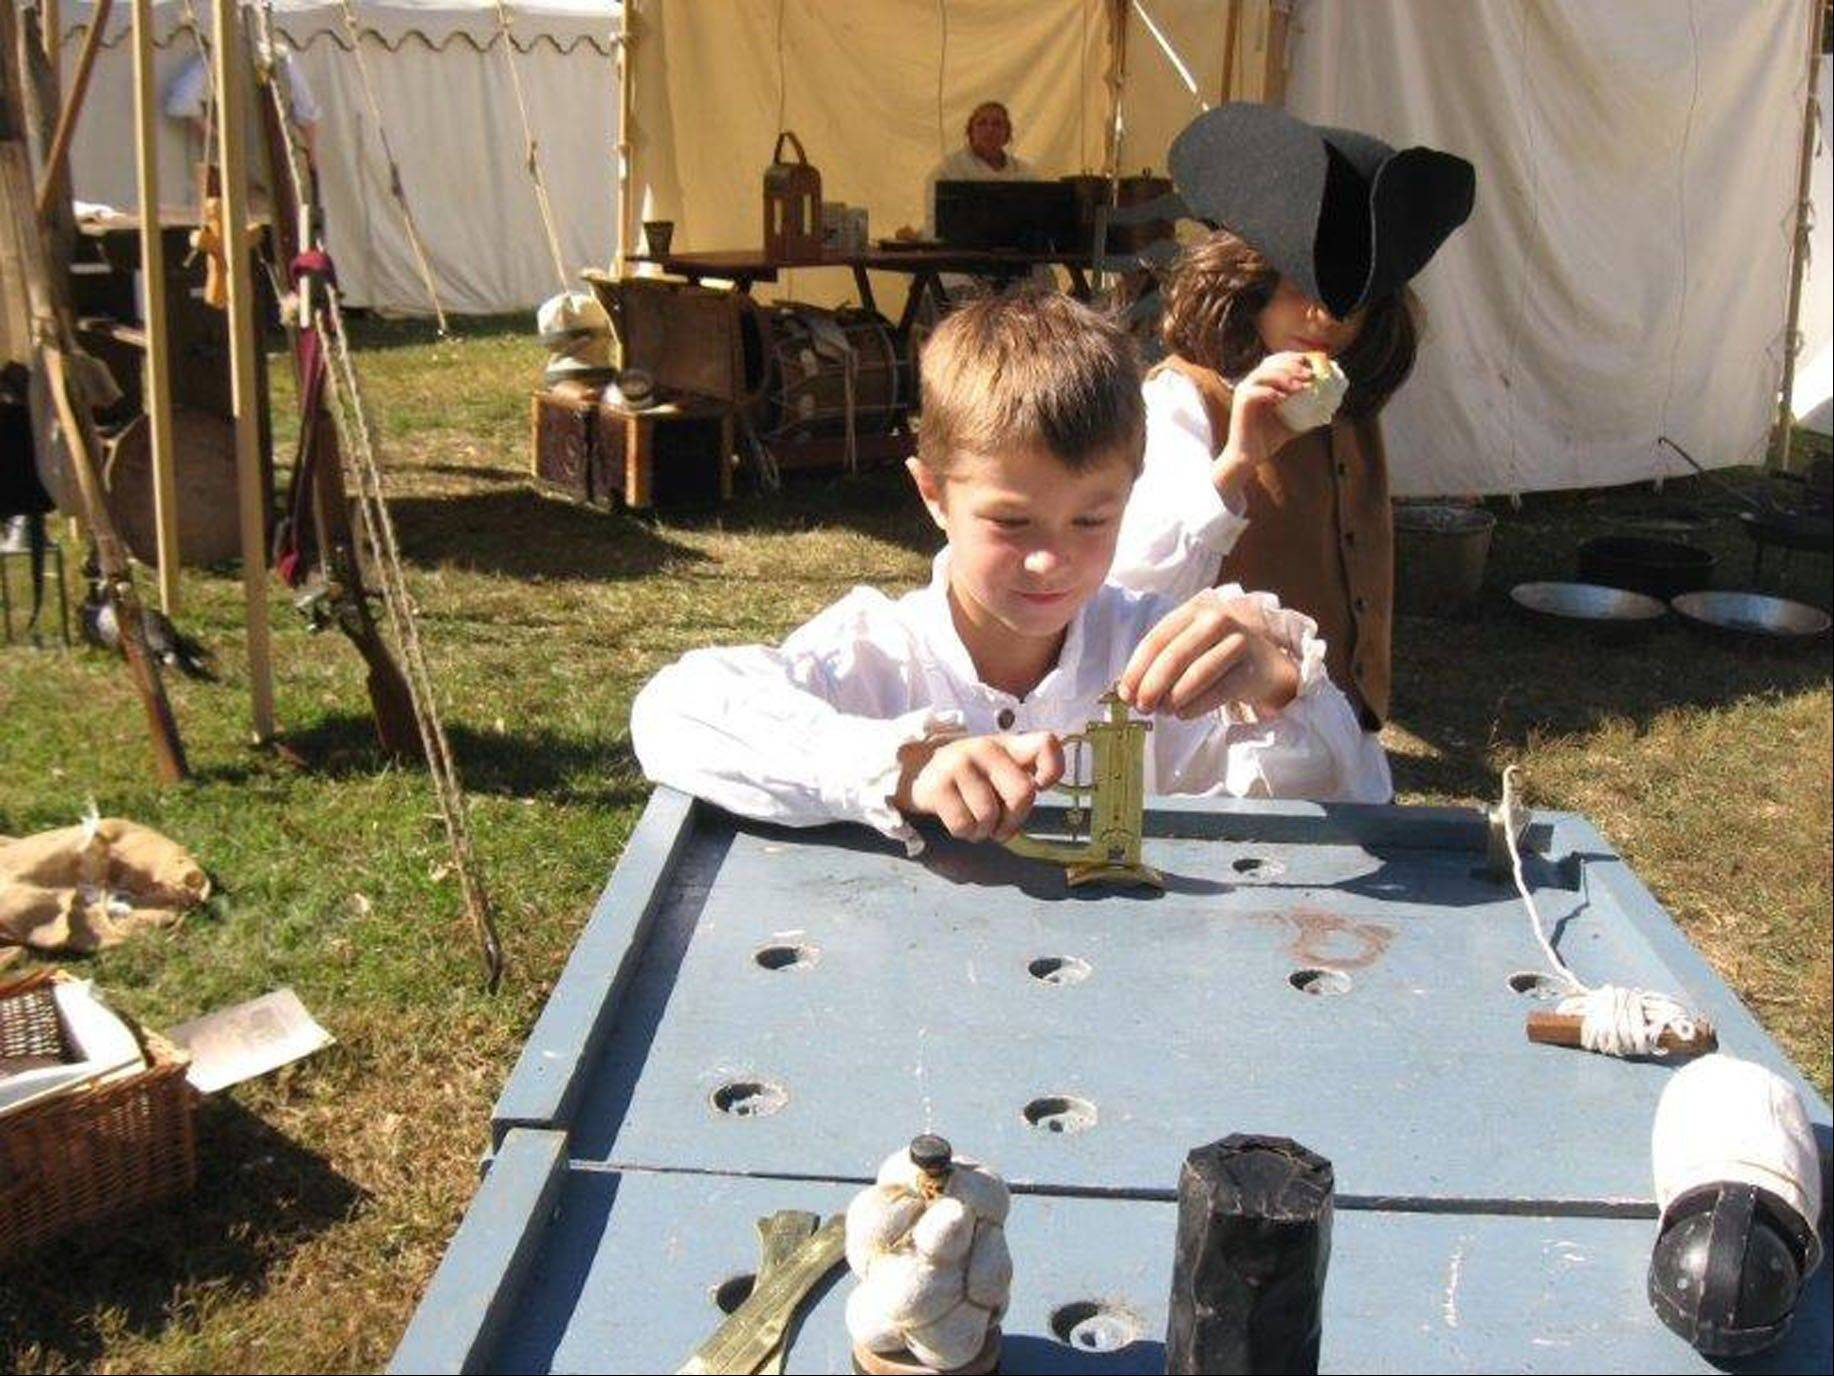 William Gill, 8, must entertain himself at re-enactment campsites by playing period games. He shows young visitors how the games are played.